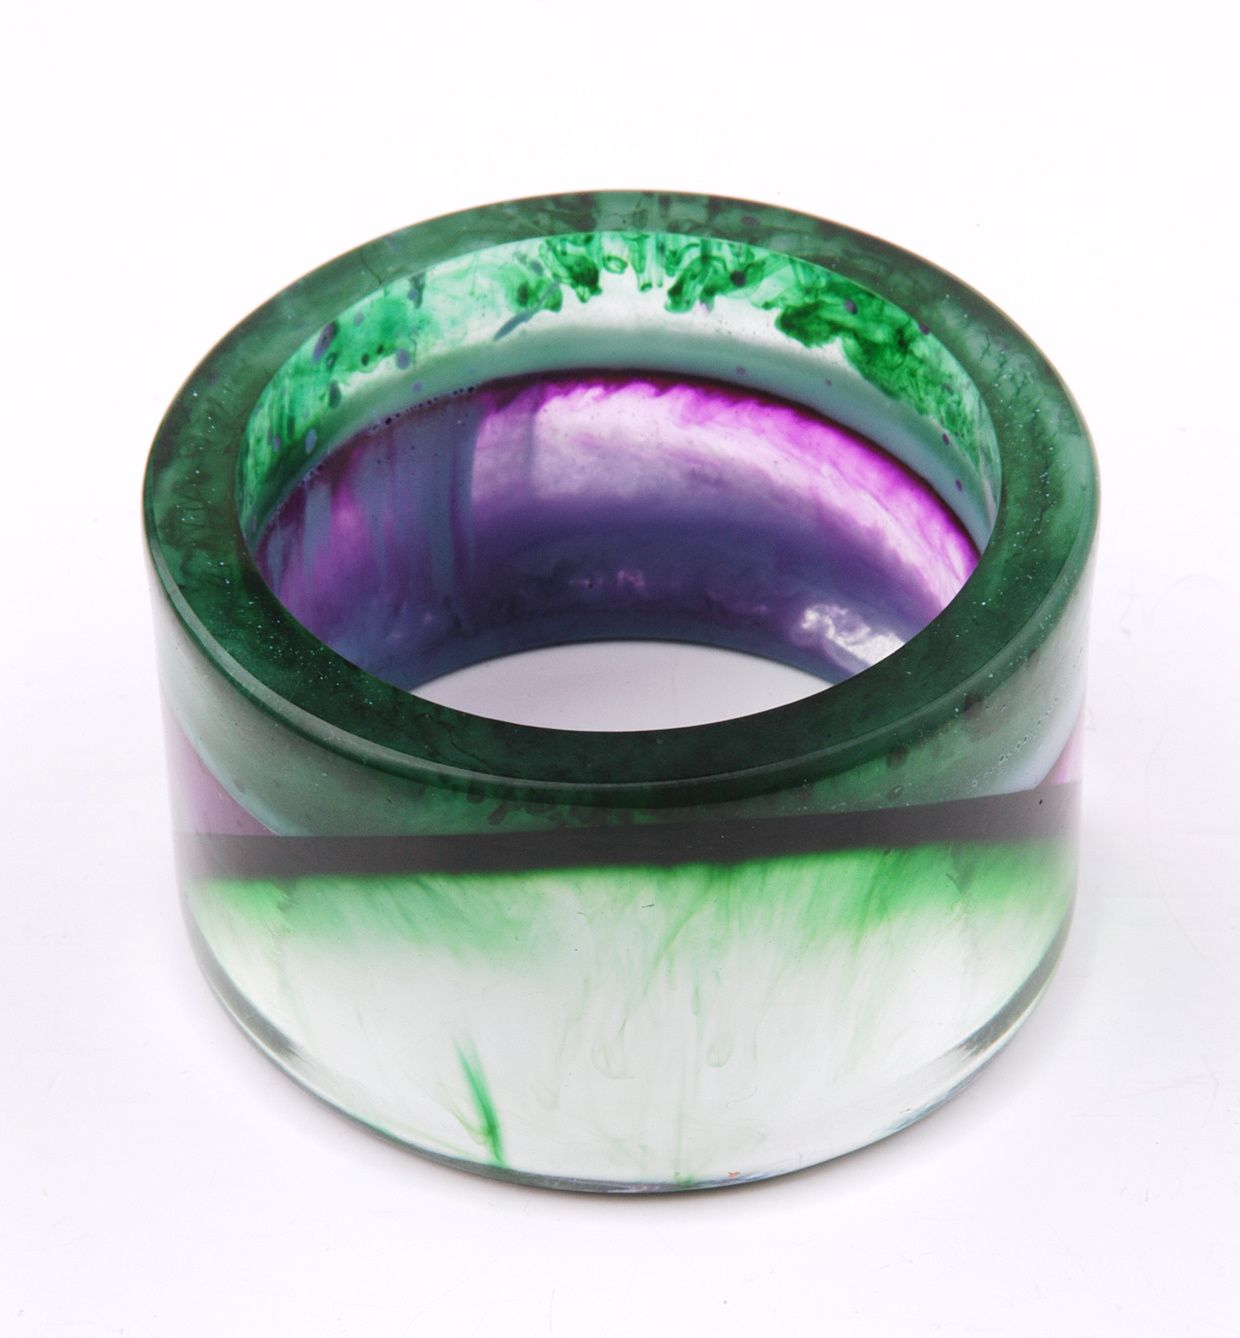 Custom order - colored resin bangle by Edna Mo